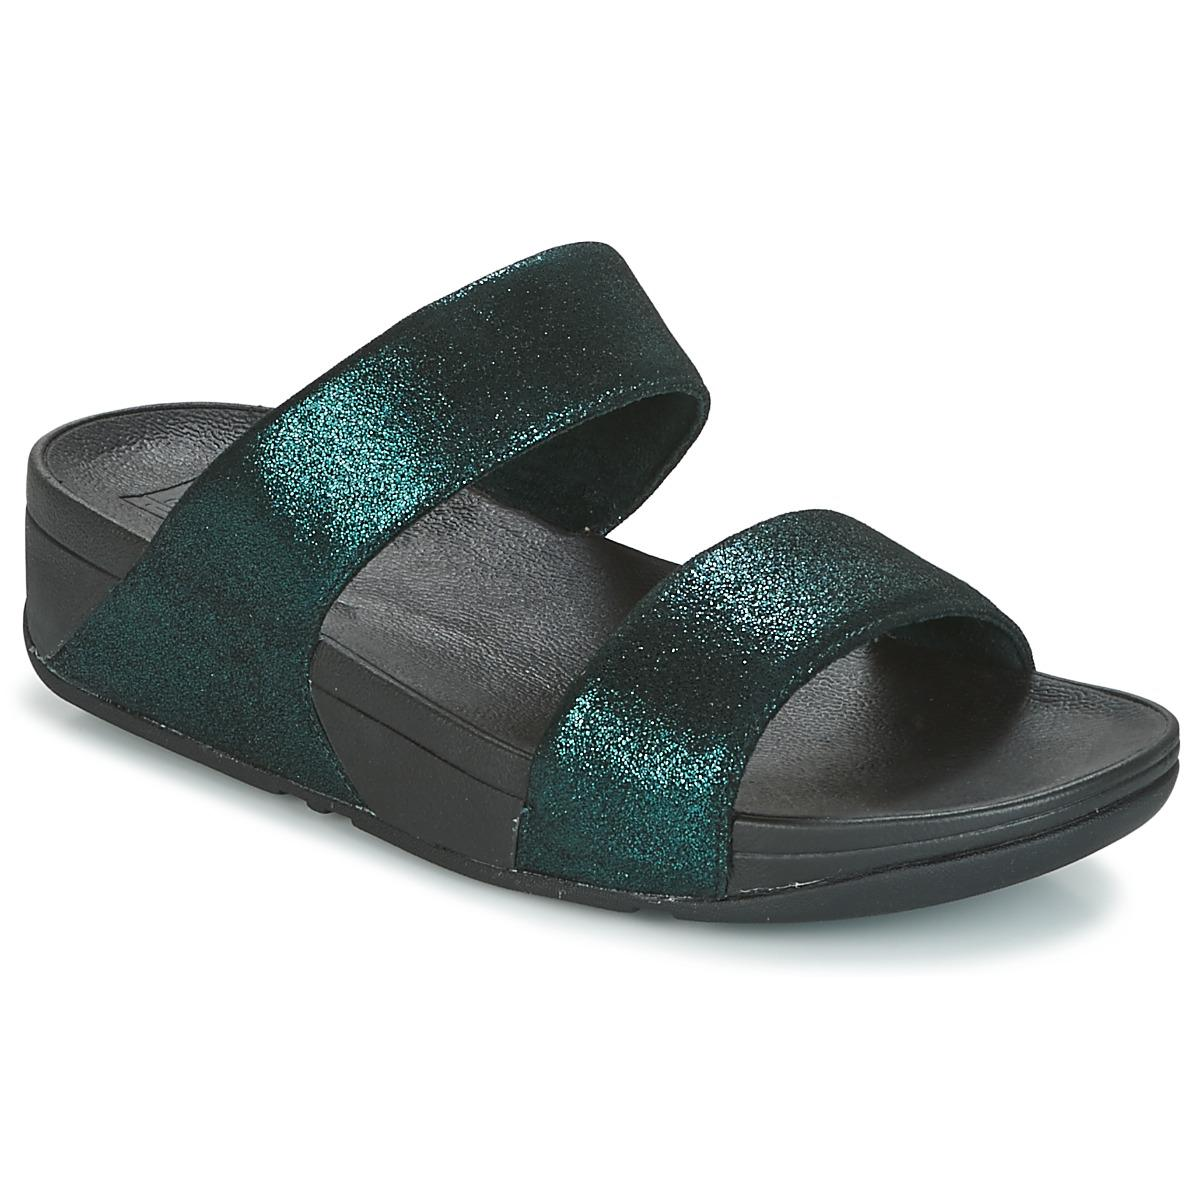 Fitflop  Slide Women's Mules|Casual Shoes In Green